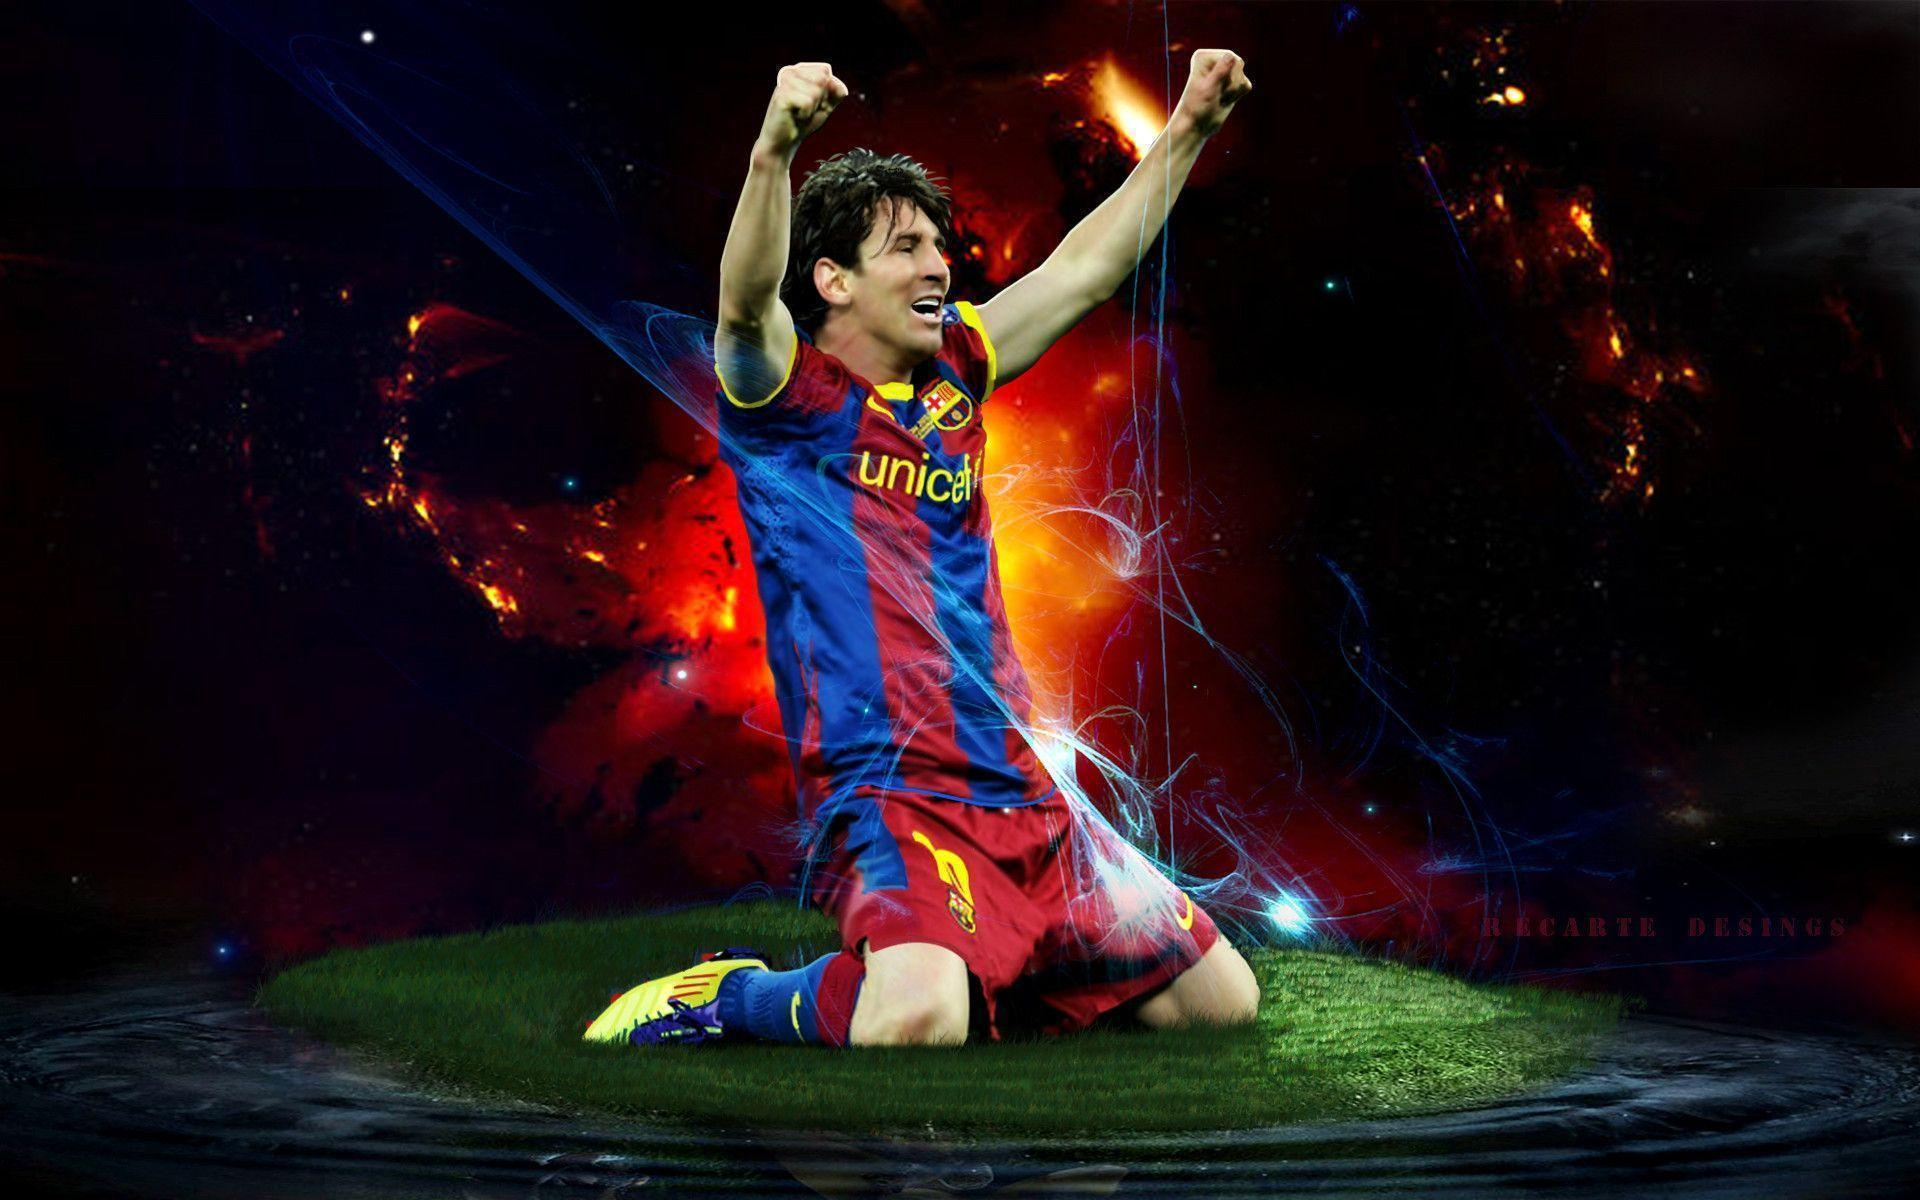 Fonds d'écran Lionel Messi : tous les wallpapers Lionel Messi